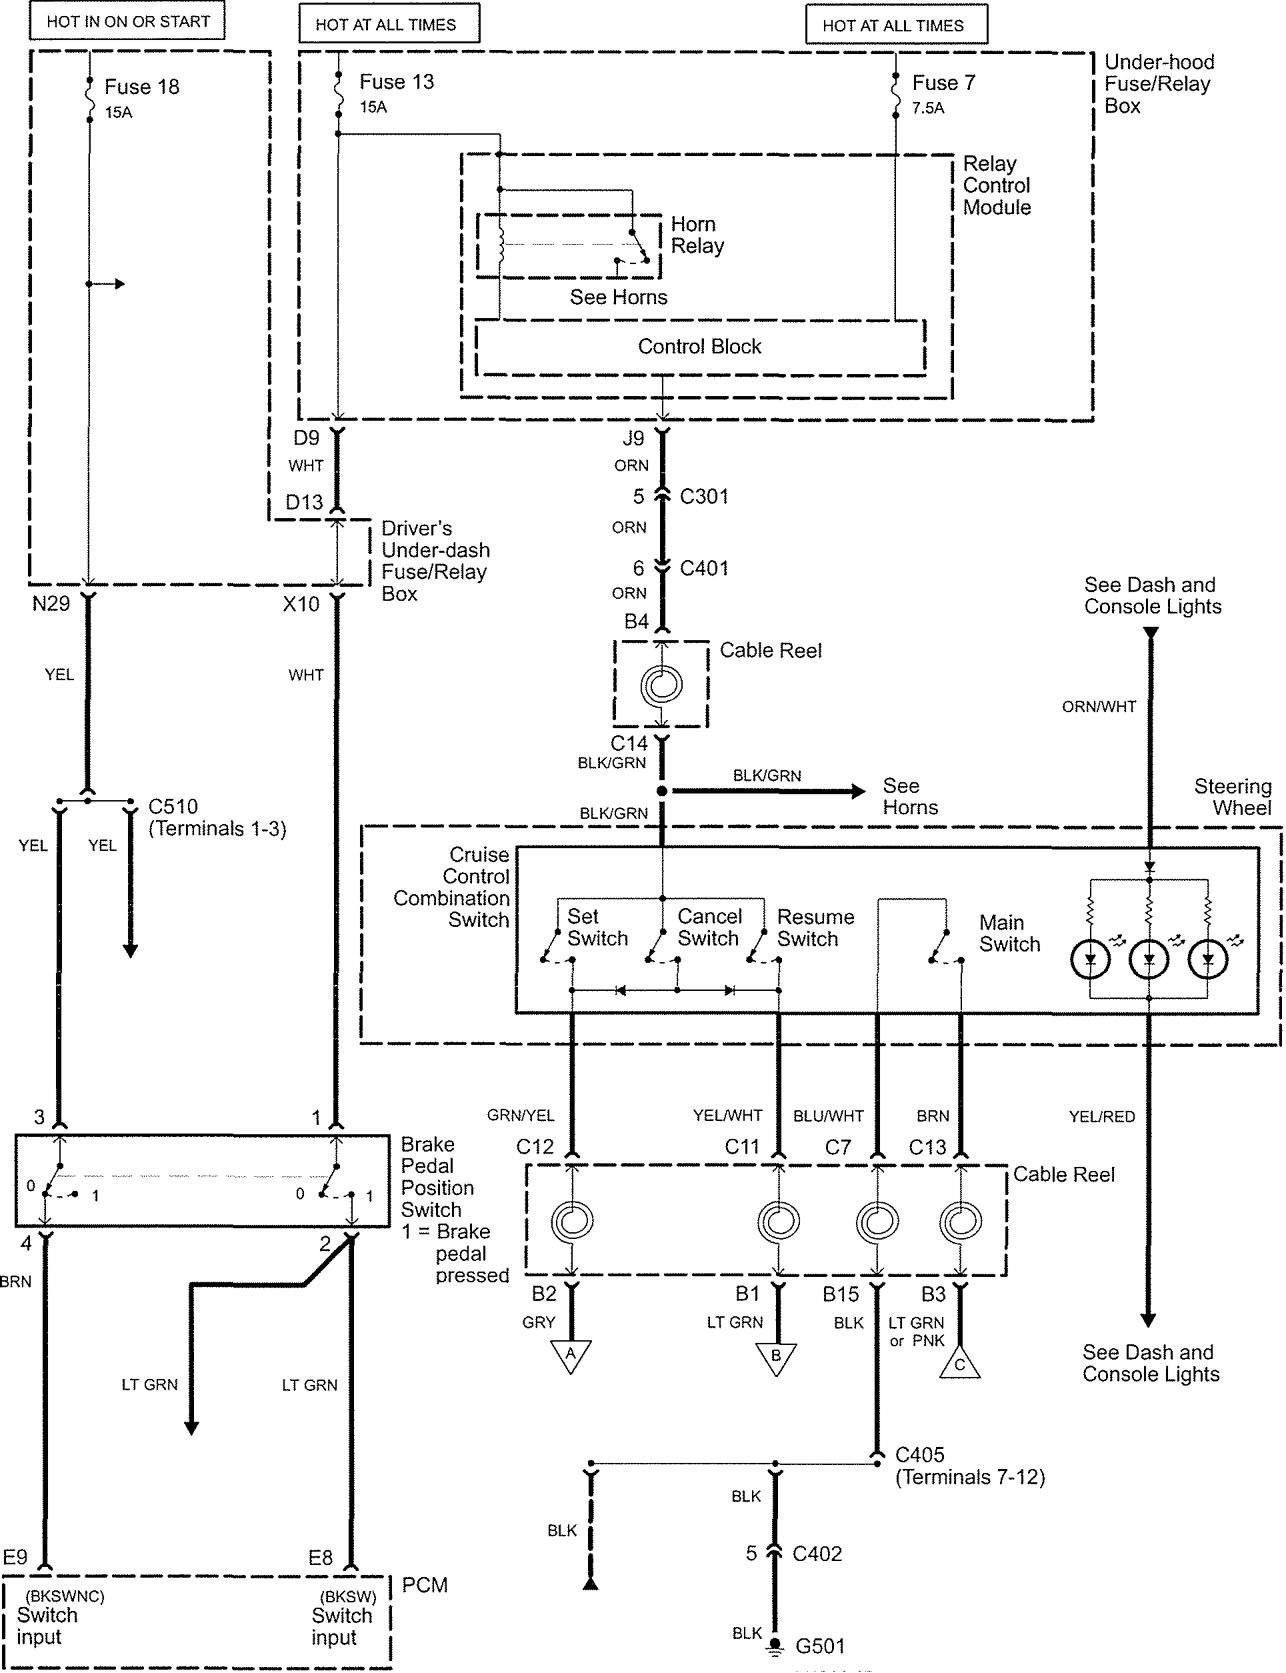 acura rl  2005  - wiring diagrams